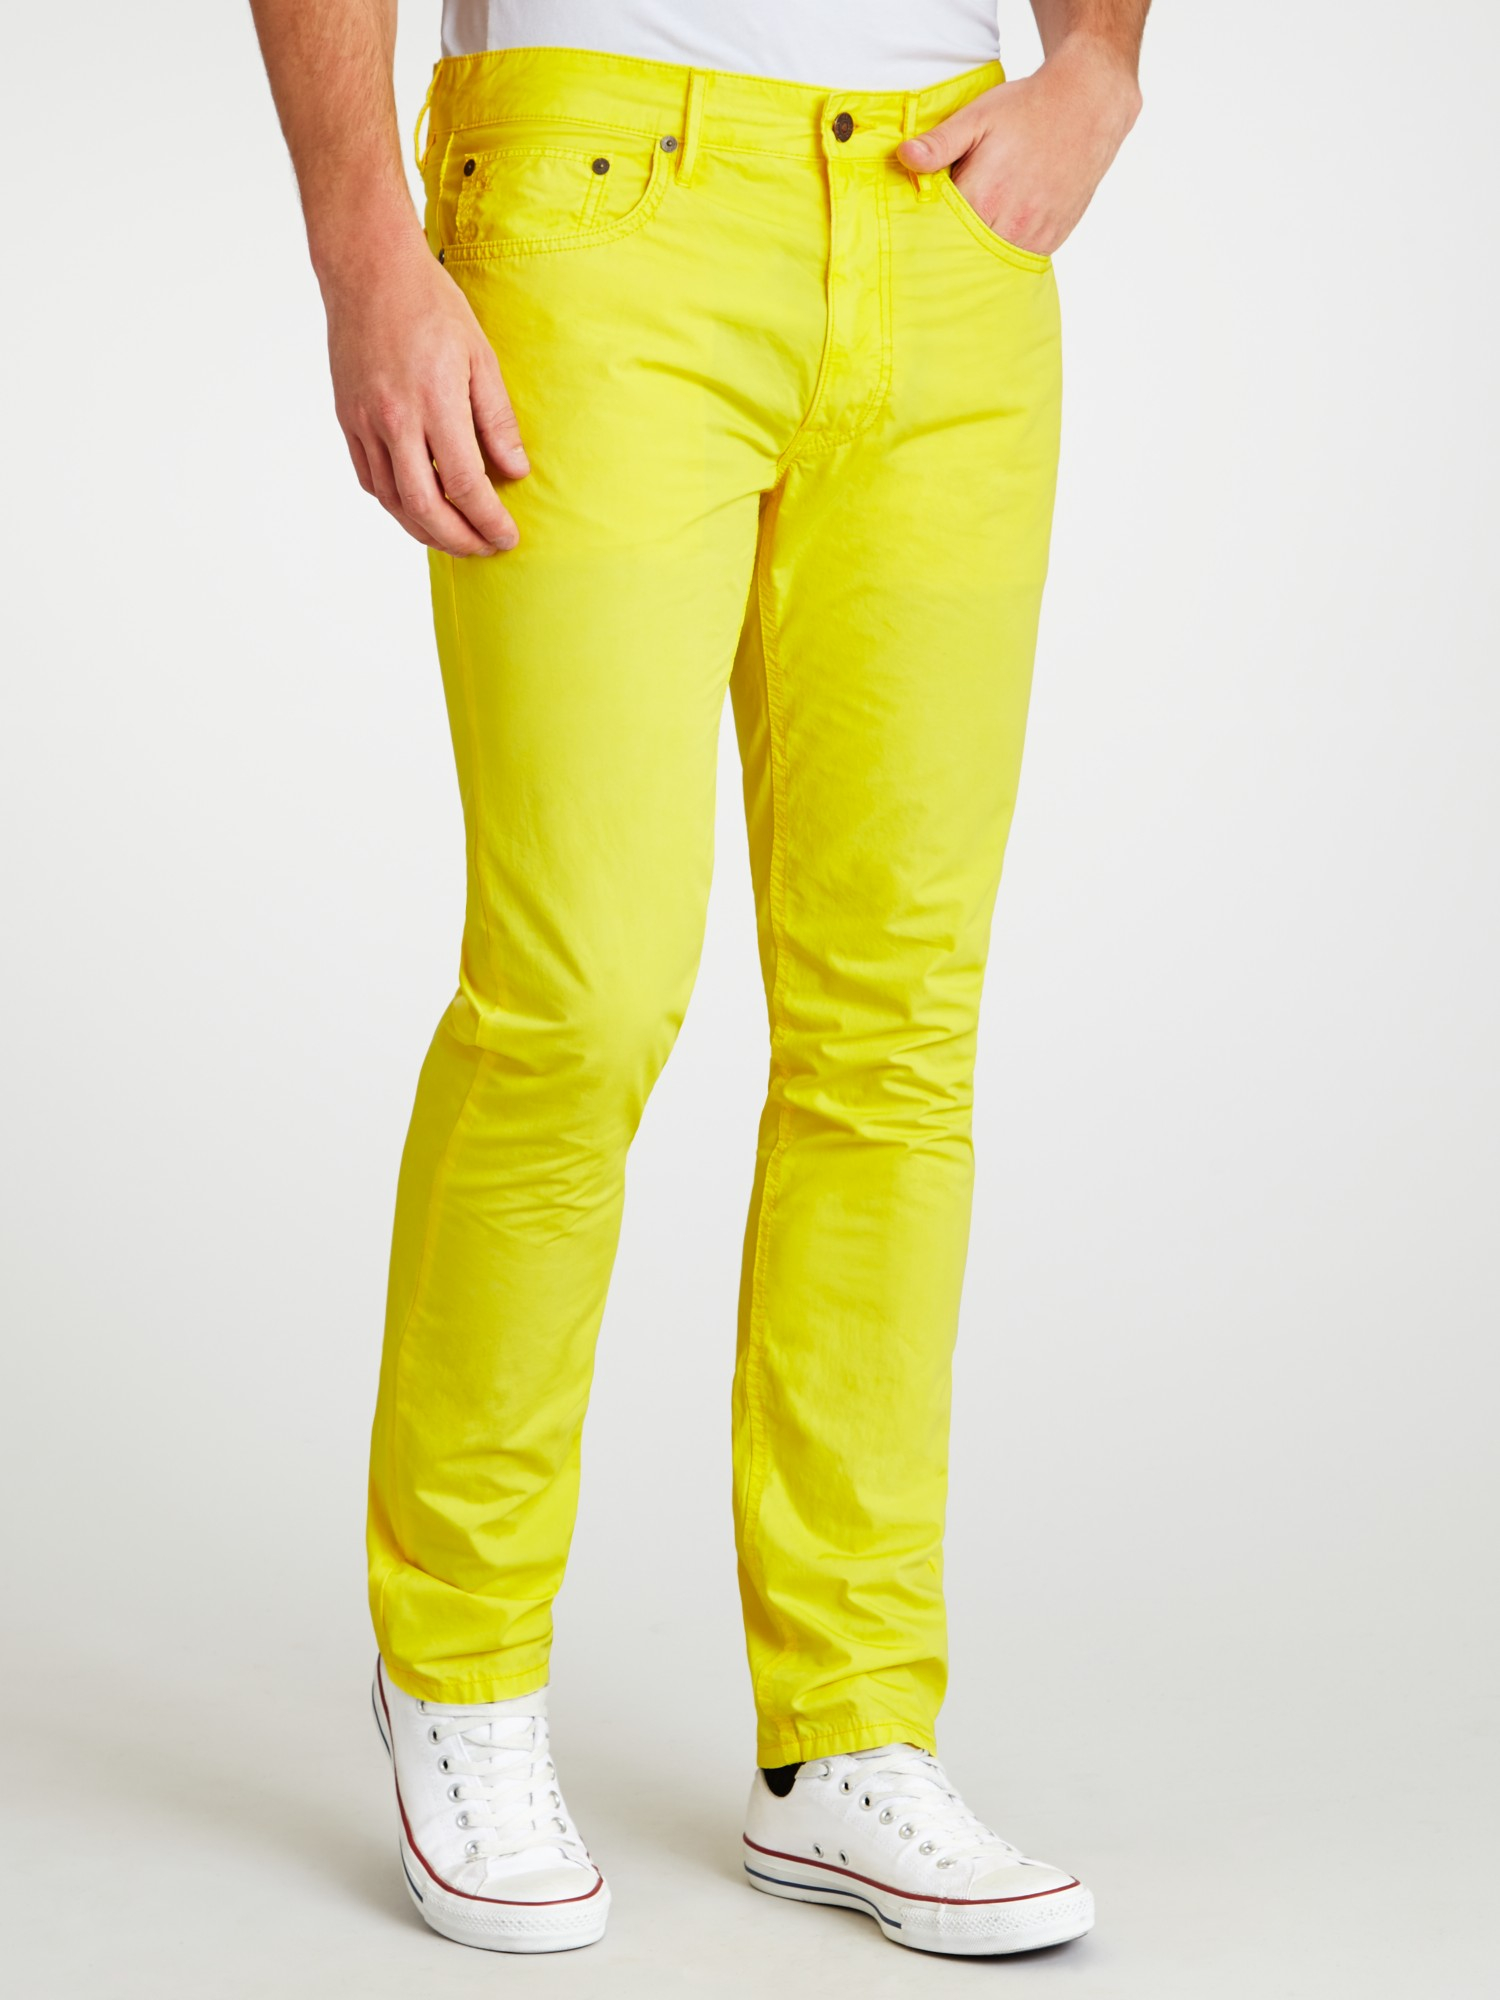 quality design 5e30a f8fef Ralph Lauren Cotton Polo Varick Slim Fit Trousers in Yellow ...